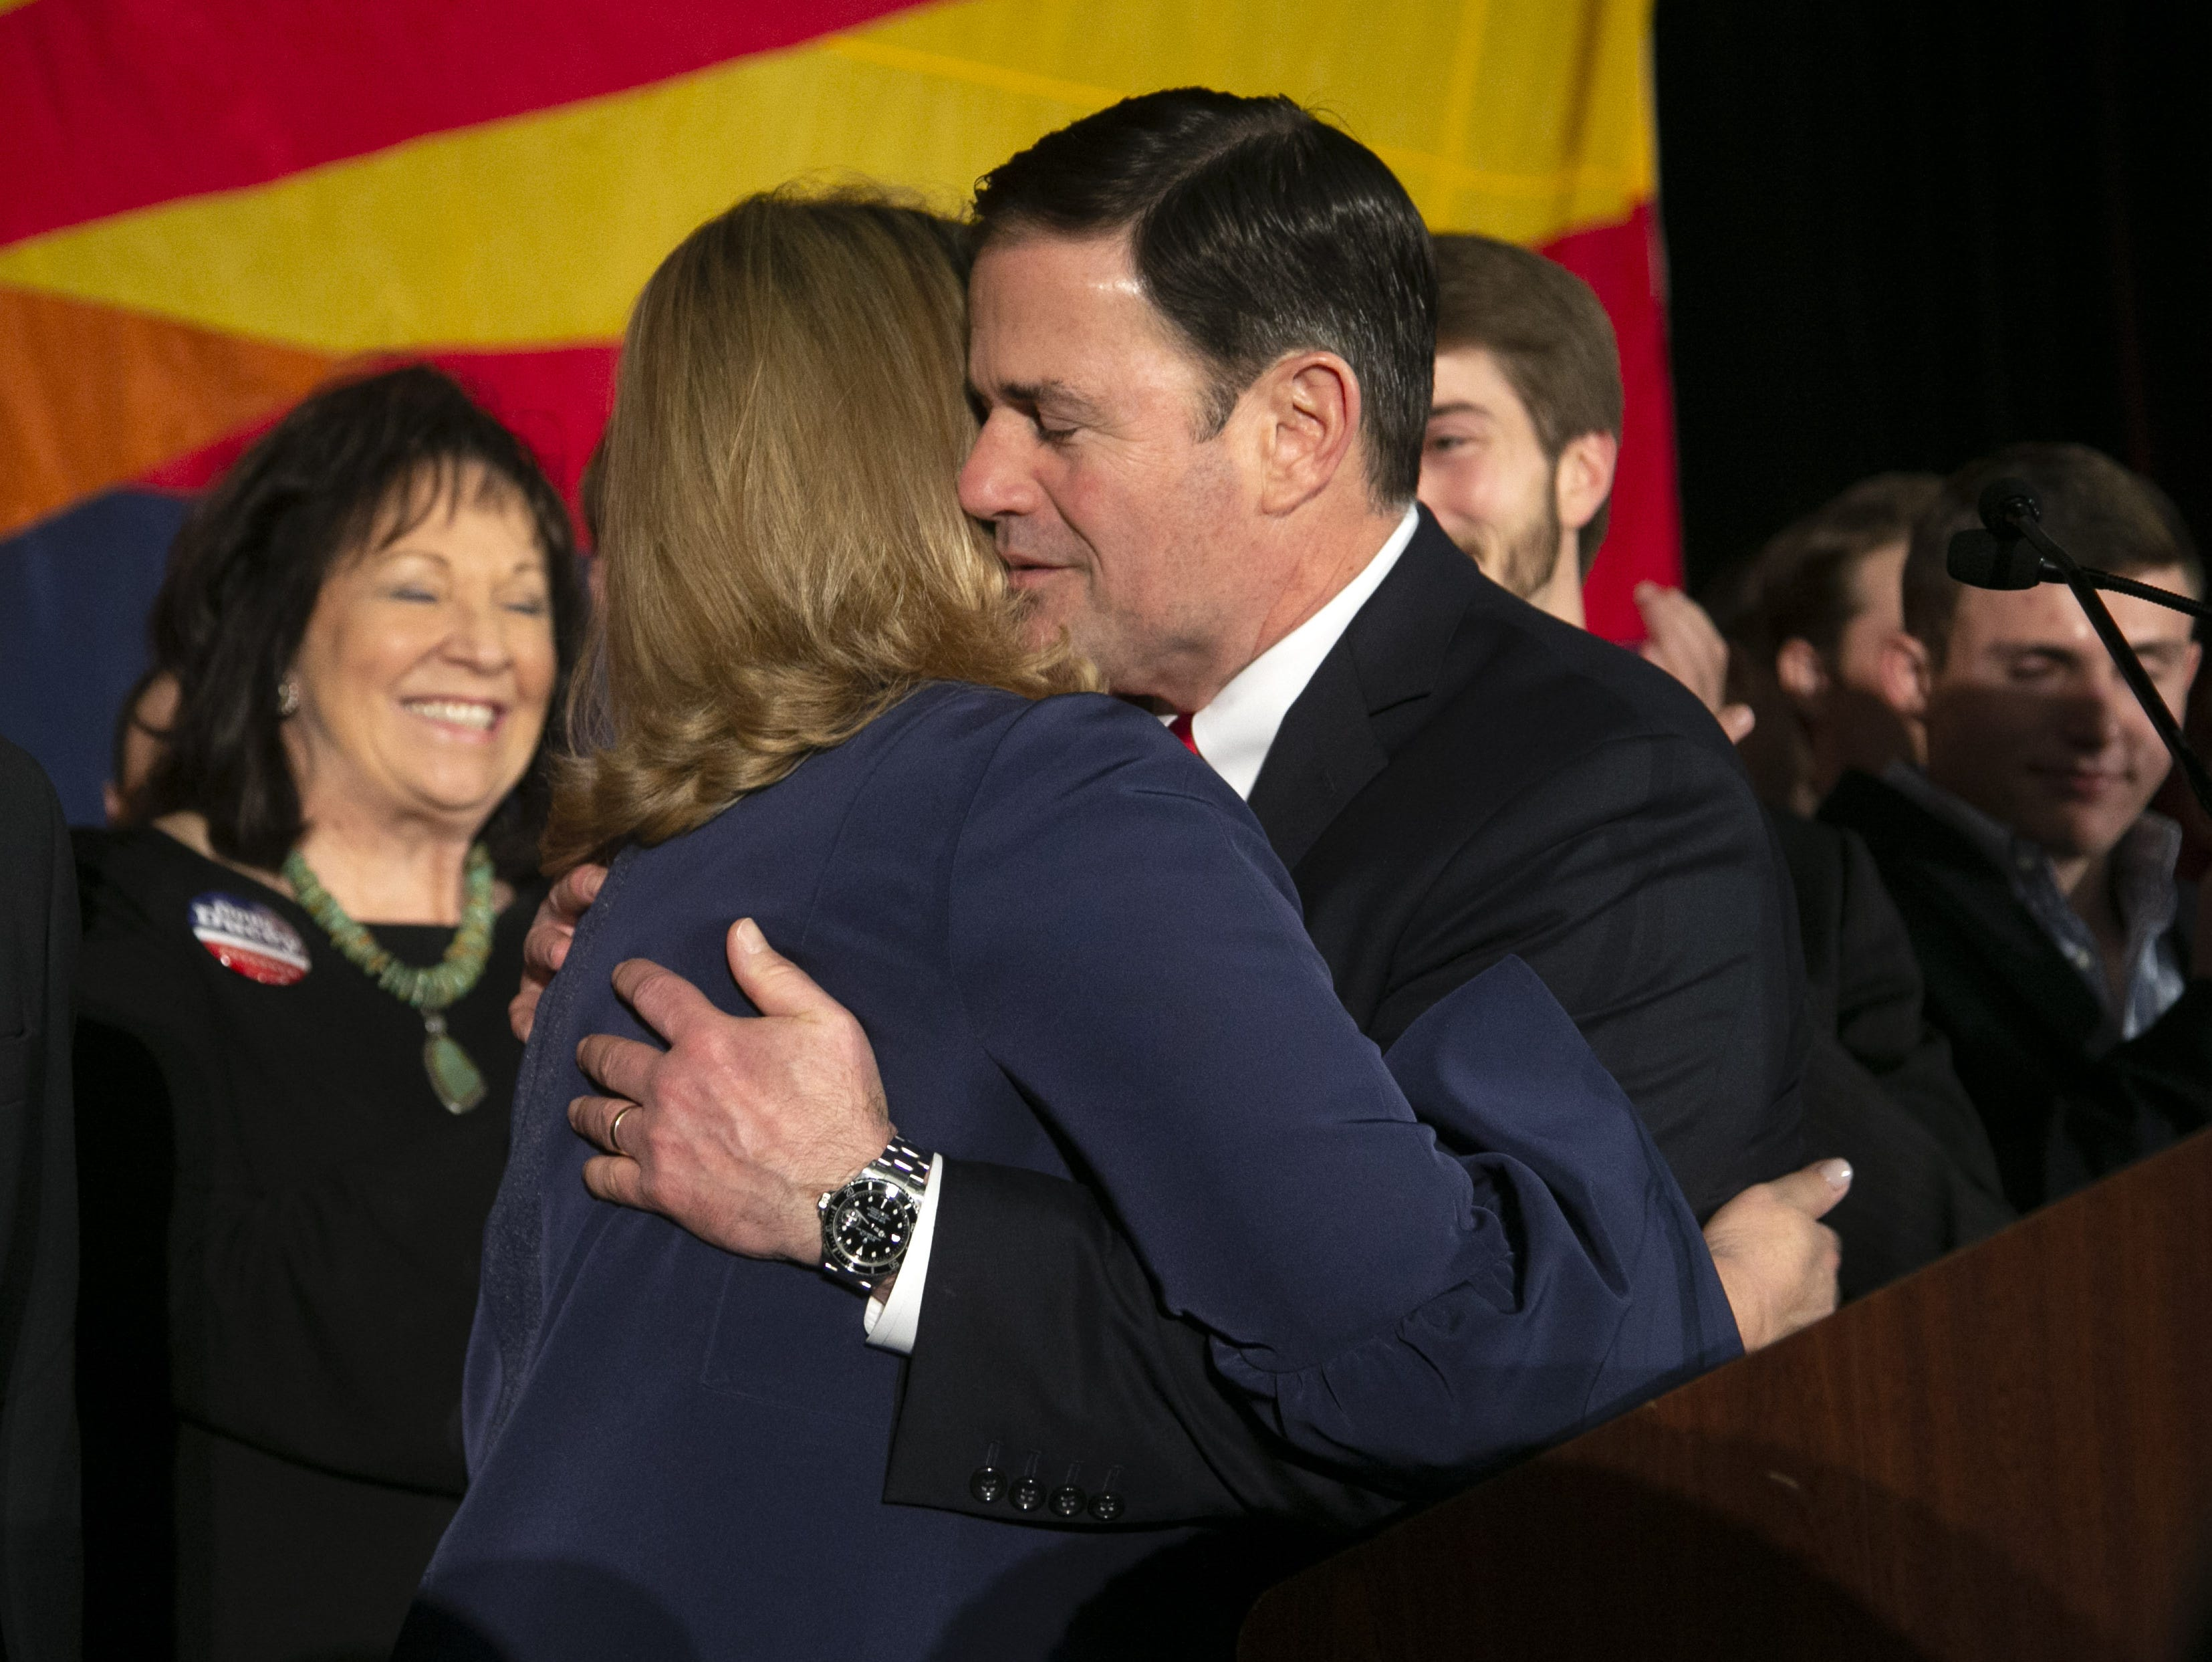 Gov. Doug Ducey speaks hugs his wife, Angela, during the Republican watch party at the DoubleTree Resort in Scottsdale on  Nov. 6, 2018.